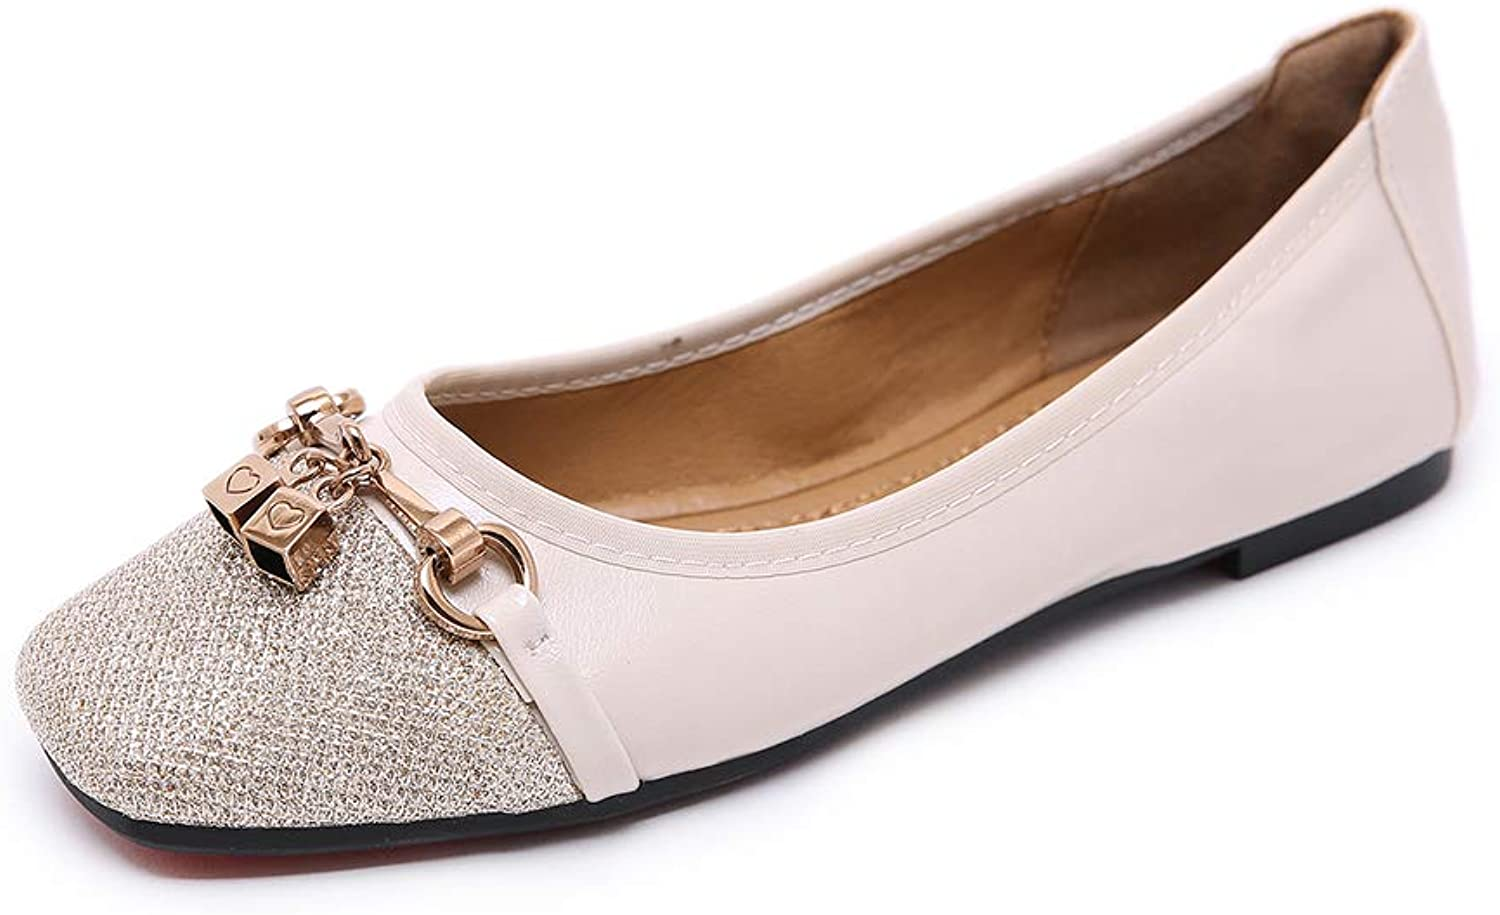 AGOWOO Loafers for Women, Fashion Metal Lock Slip On Flat Dress shoes